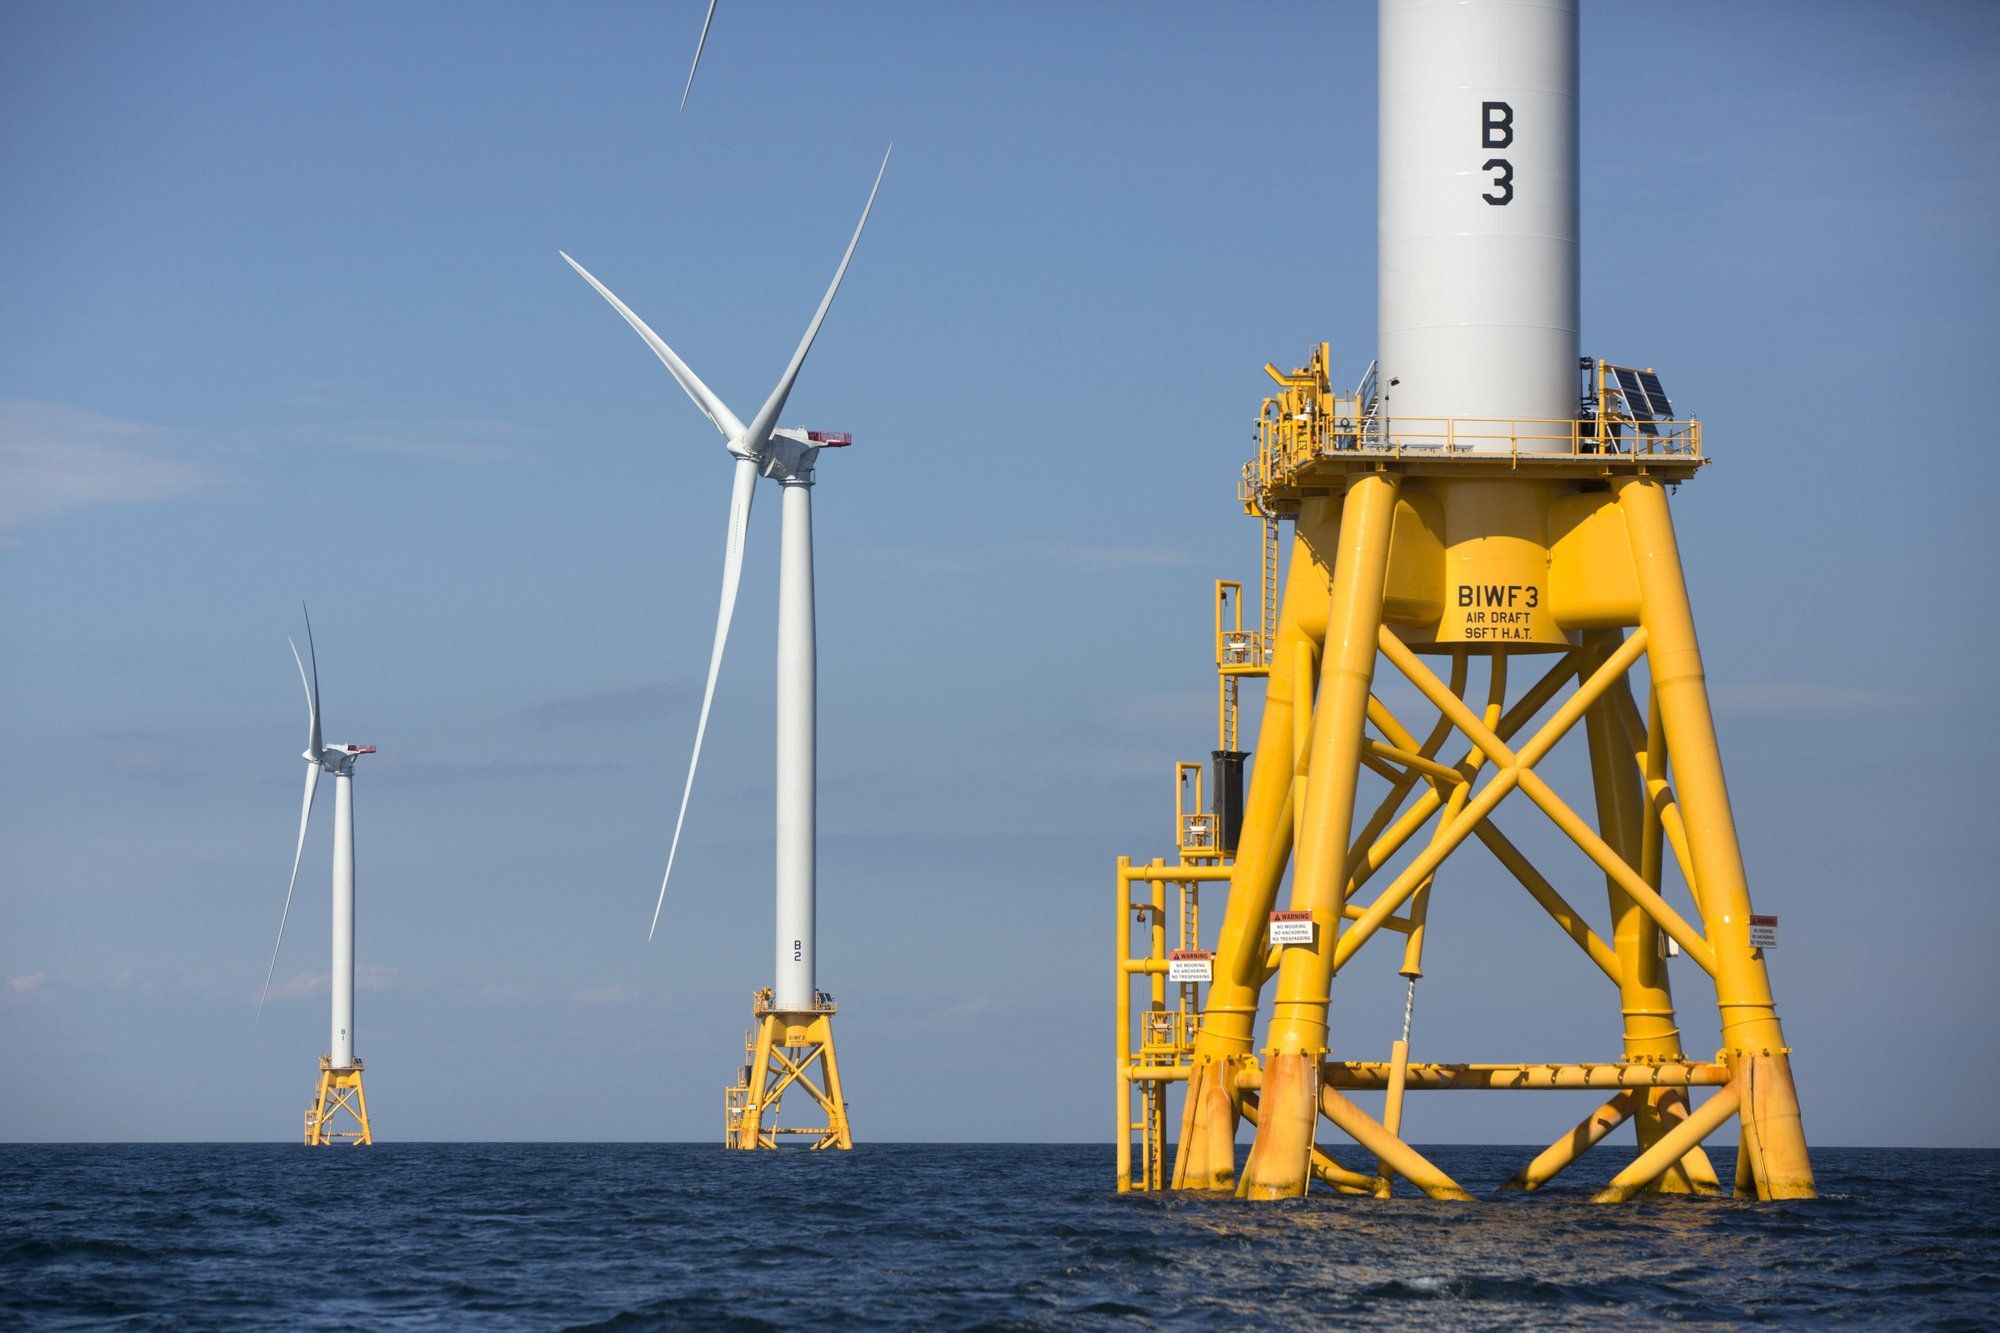 New offshore wind farm project will dwarf nation's 1st one